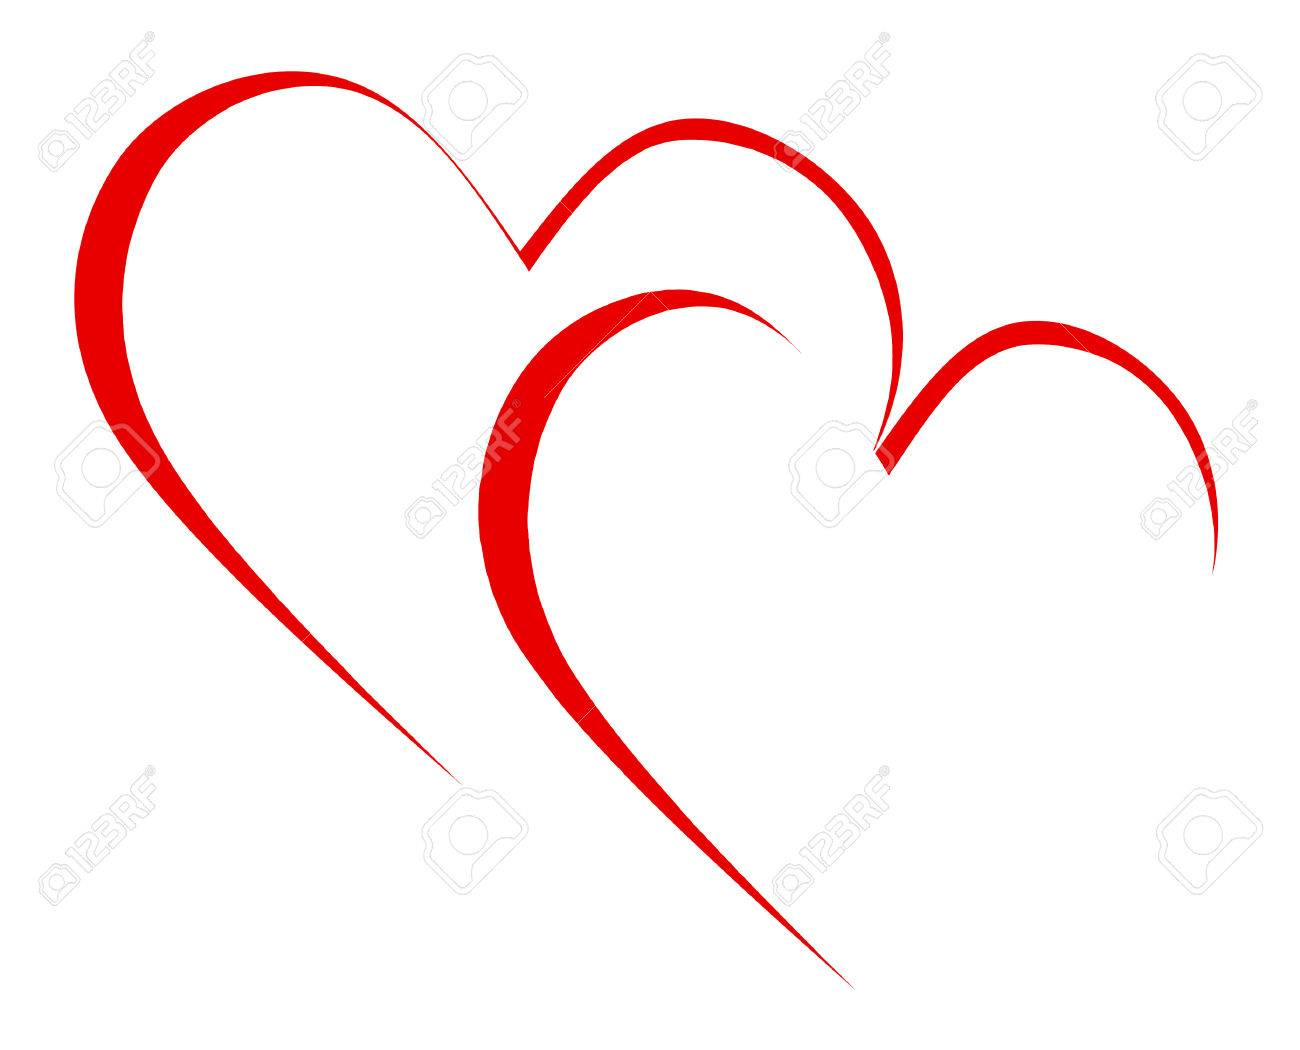 Intertwined Hearts Meaning Romanticism Togetherness And Passion